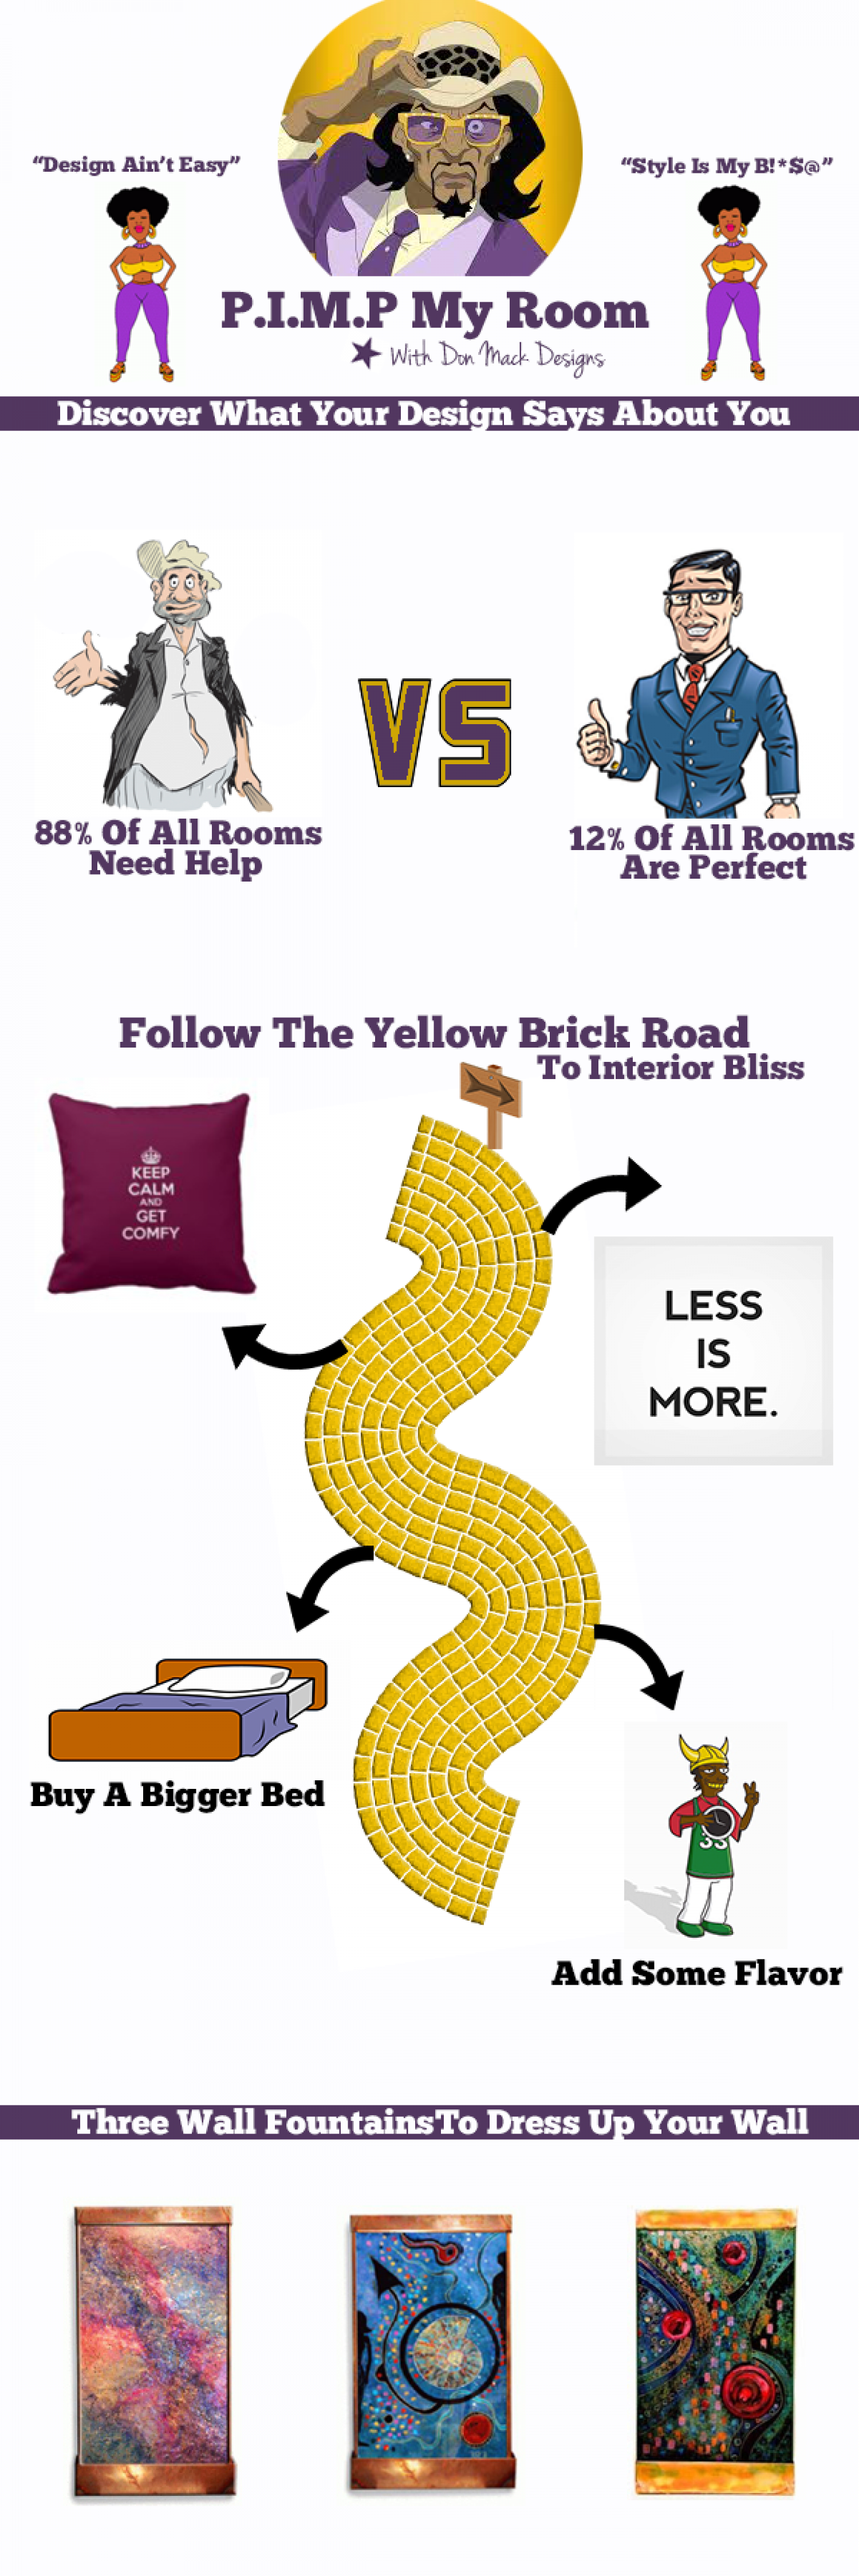 Pimp My Room with Don Mack Designs Infographic